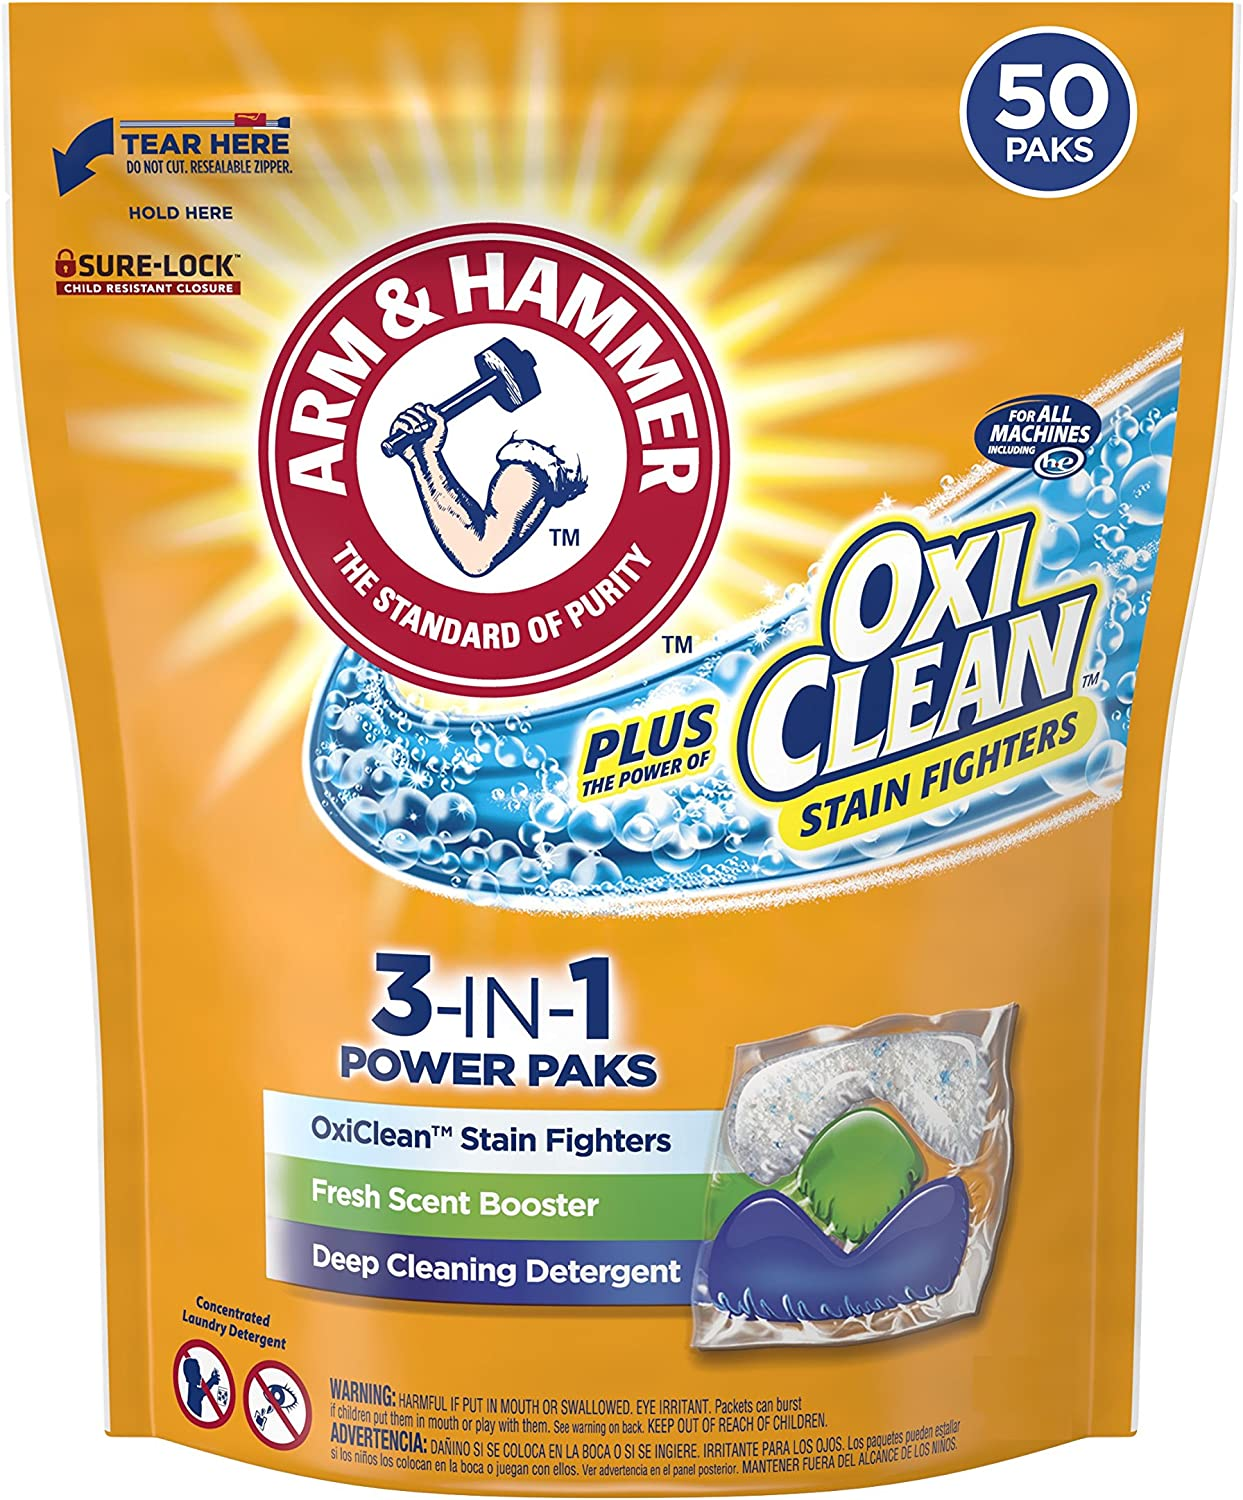 Arm & Hammer Plus OxiClean HE 3-in-1 Laundry Detergent Power Paks, 50 Count